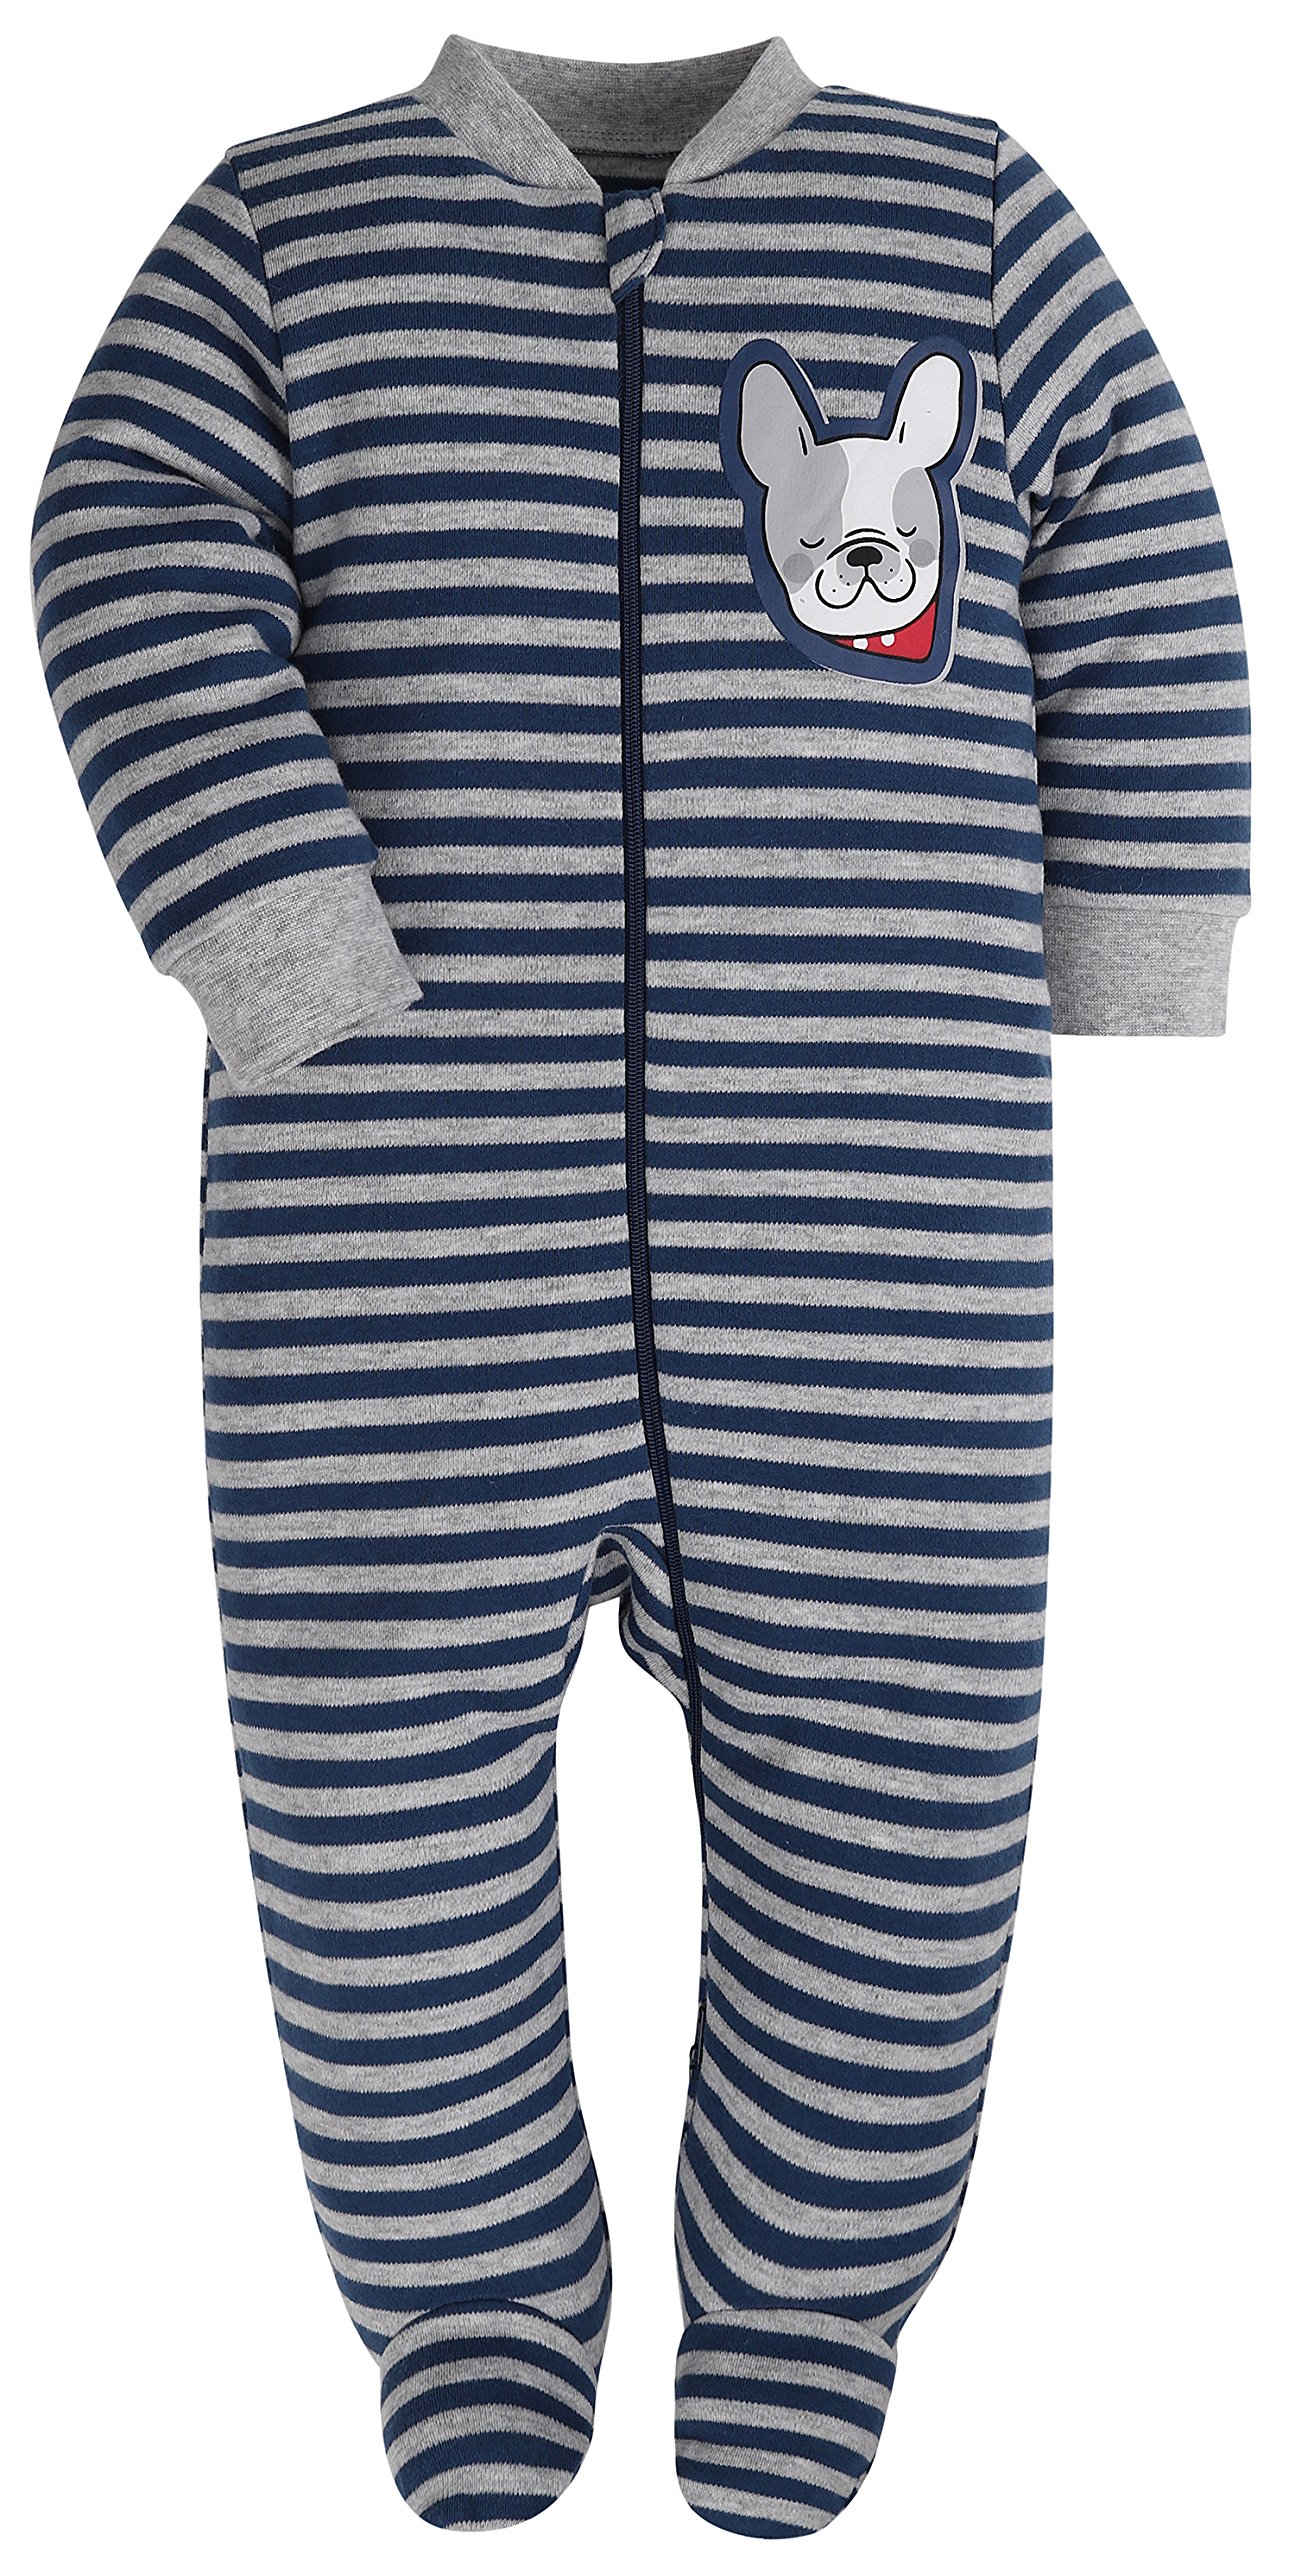 Baby Boys'2 Pack Footed Sleeper Yarn-Dyed Striped Baby Pajamas Set (Blue Dog/Grey Car, 18-24 Months) by SHENGWEN (Image #6)